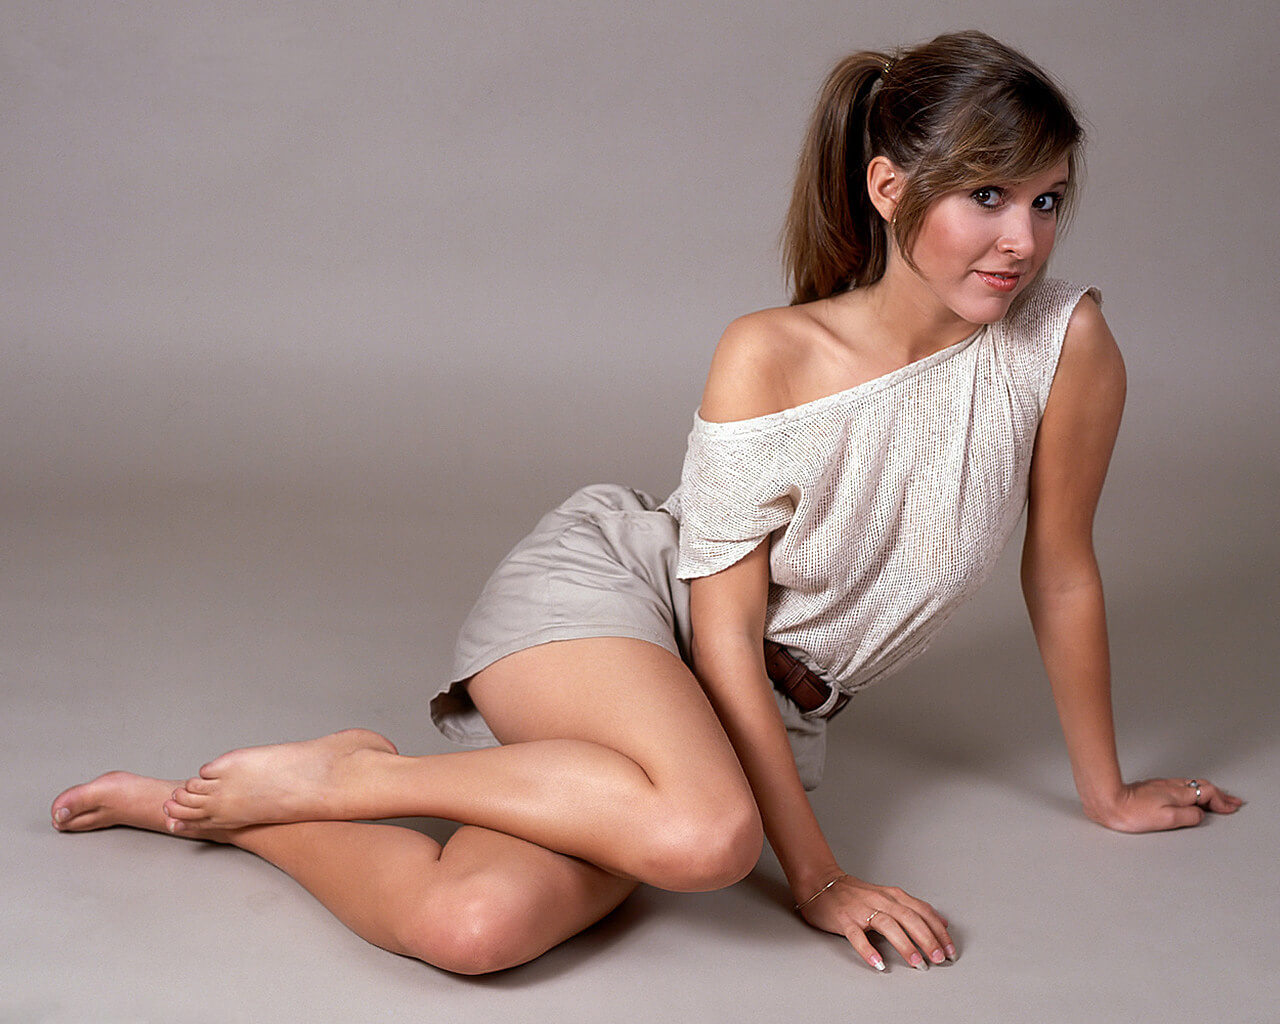 carrie-fisher-3.jpg (1280×1024)